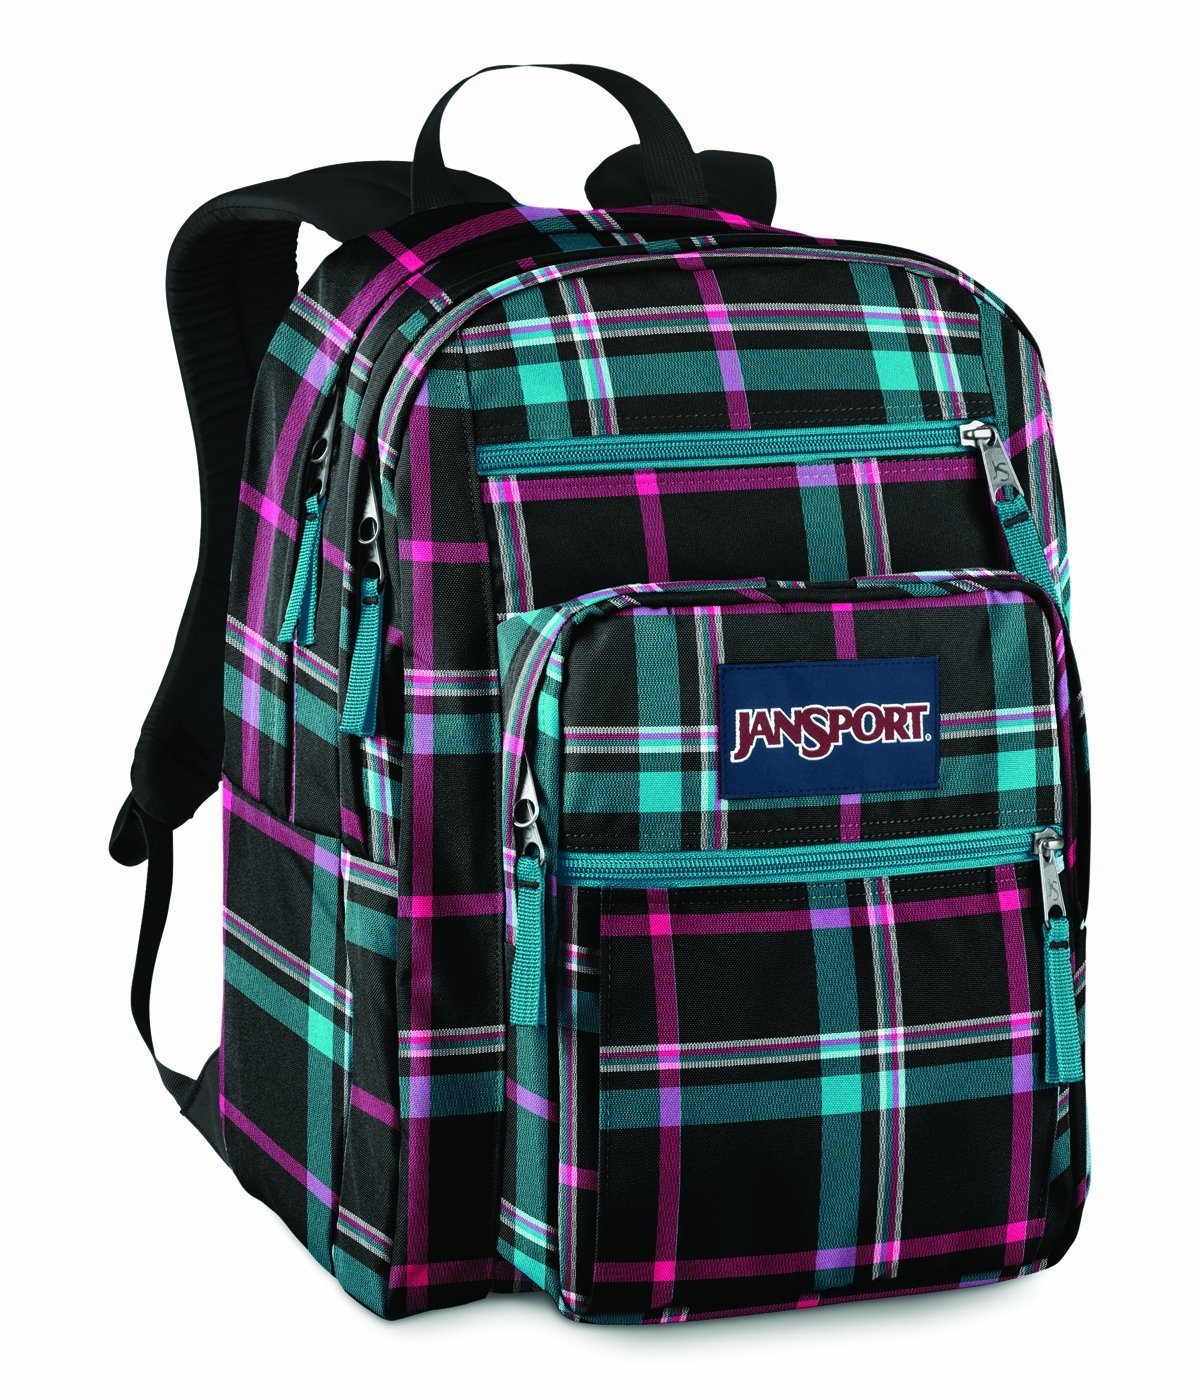 Jansport Backpacks For School BUyqNs2Z